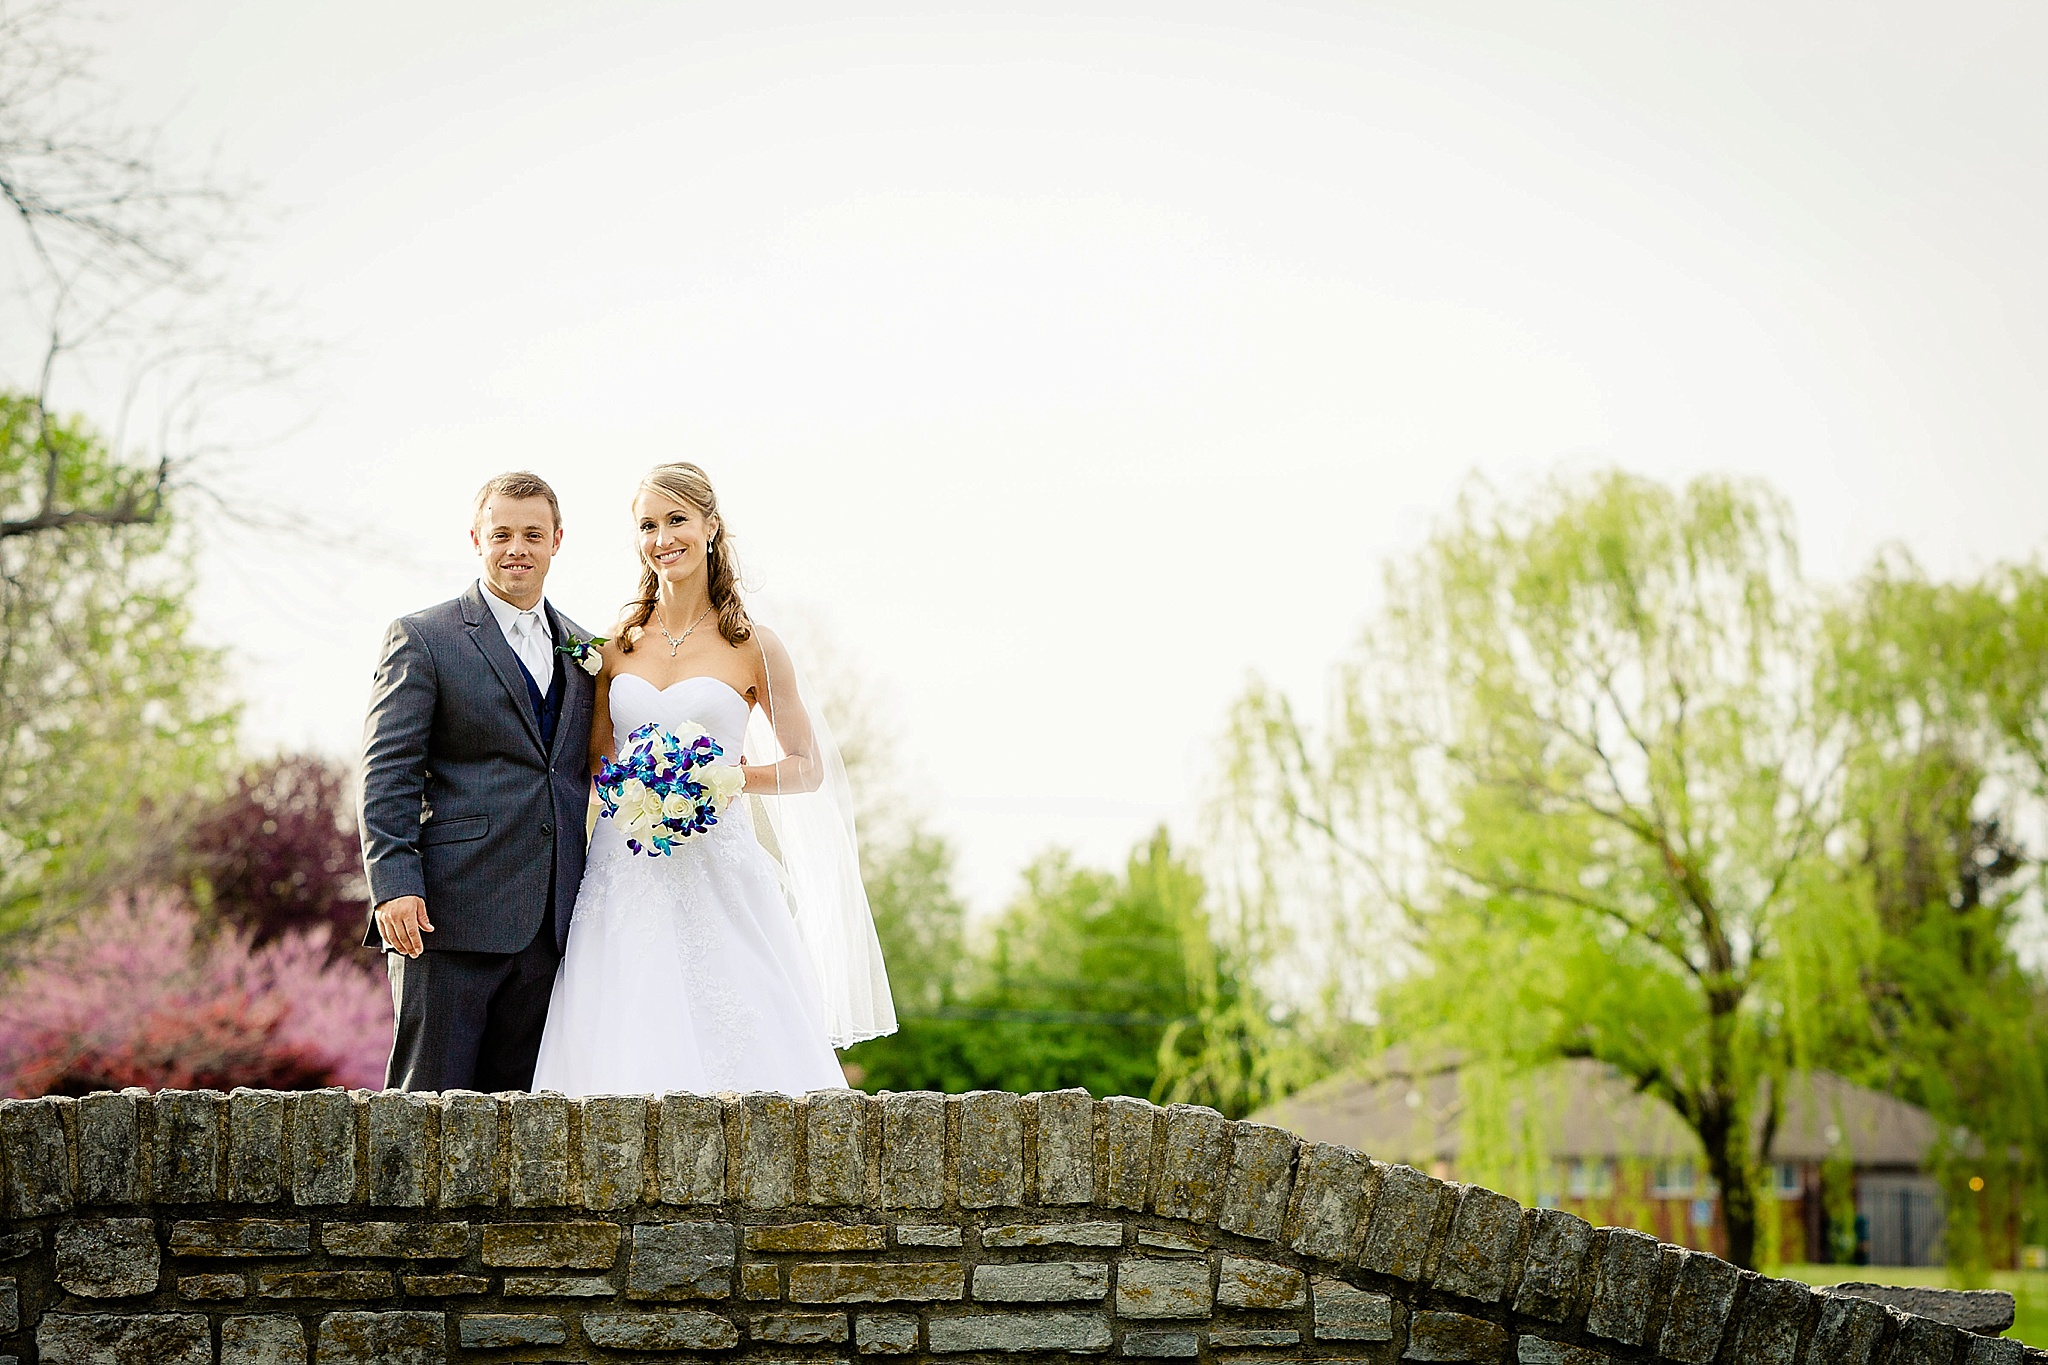 Colleen & Tyler's Lexington, KY Wedding